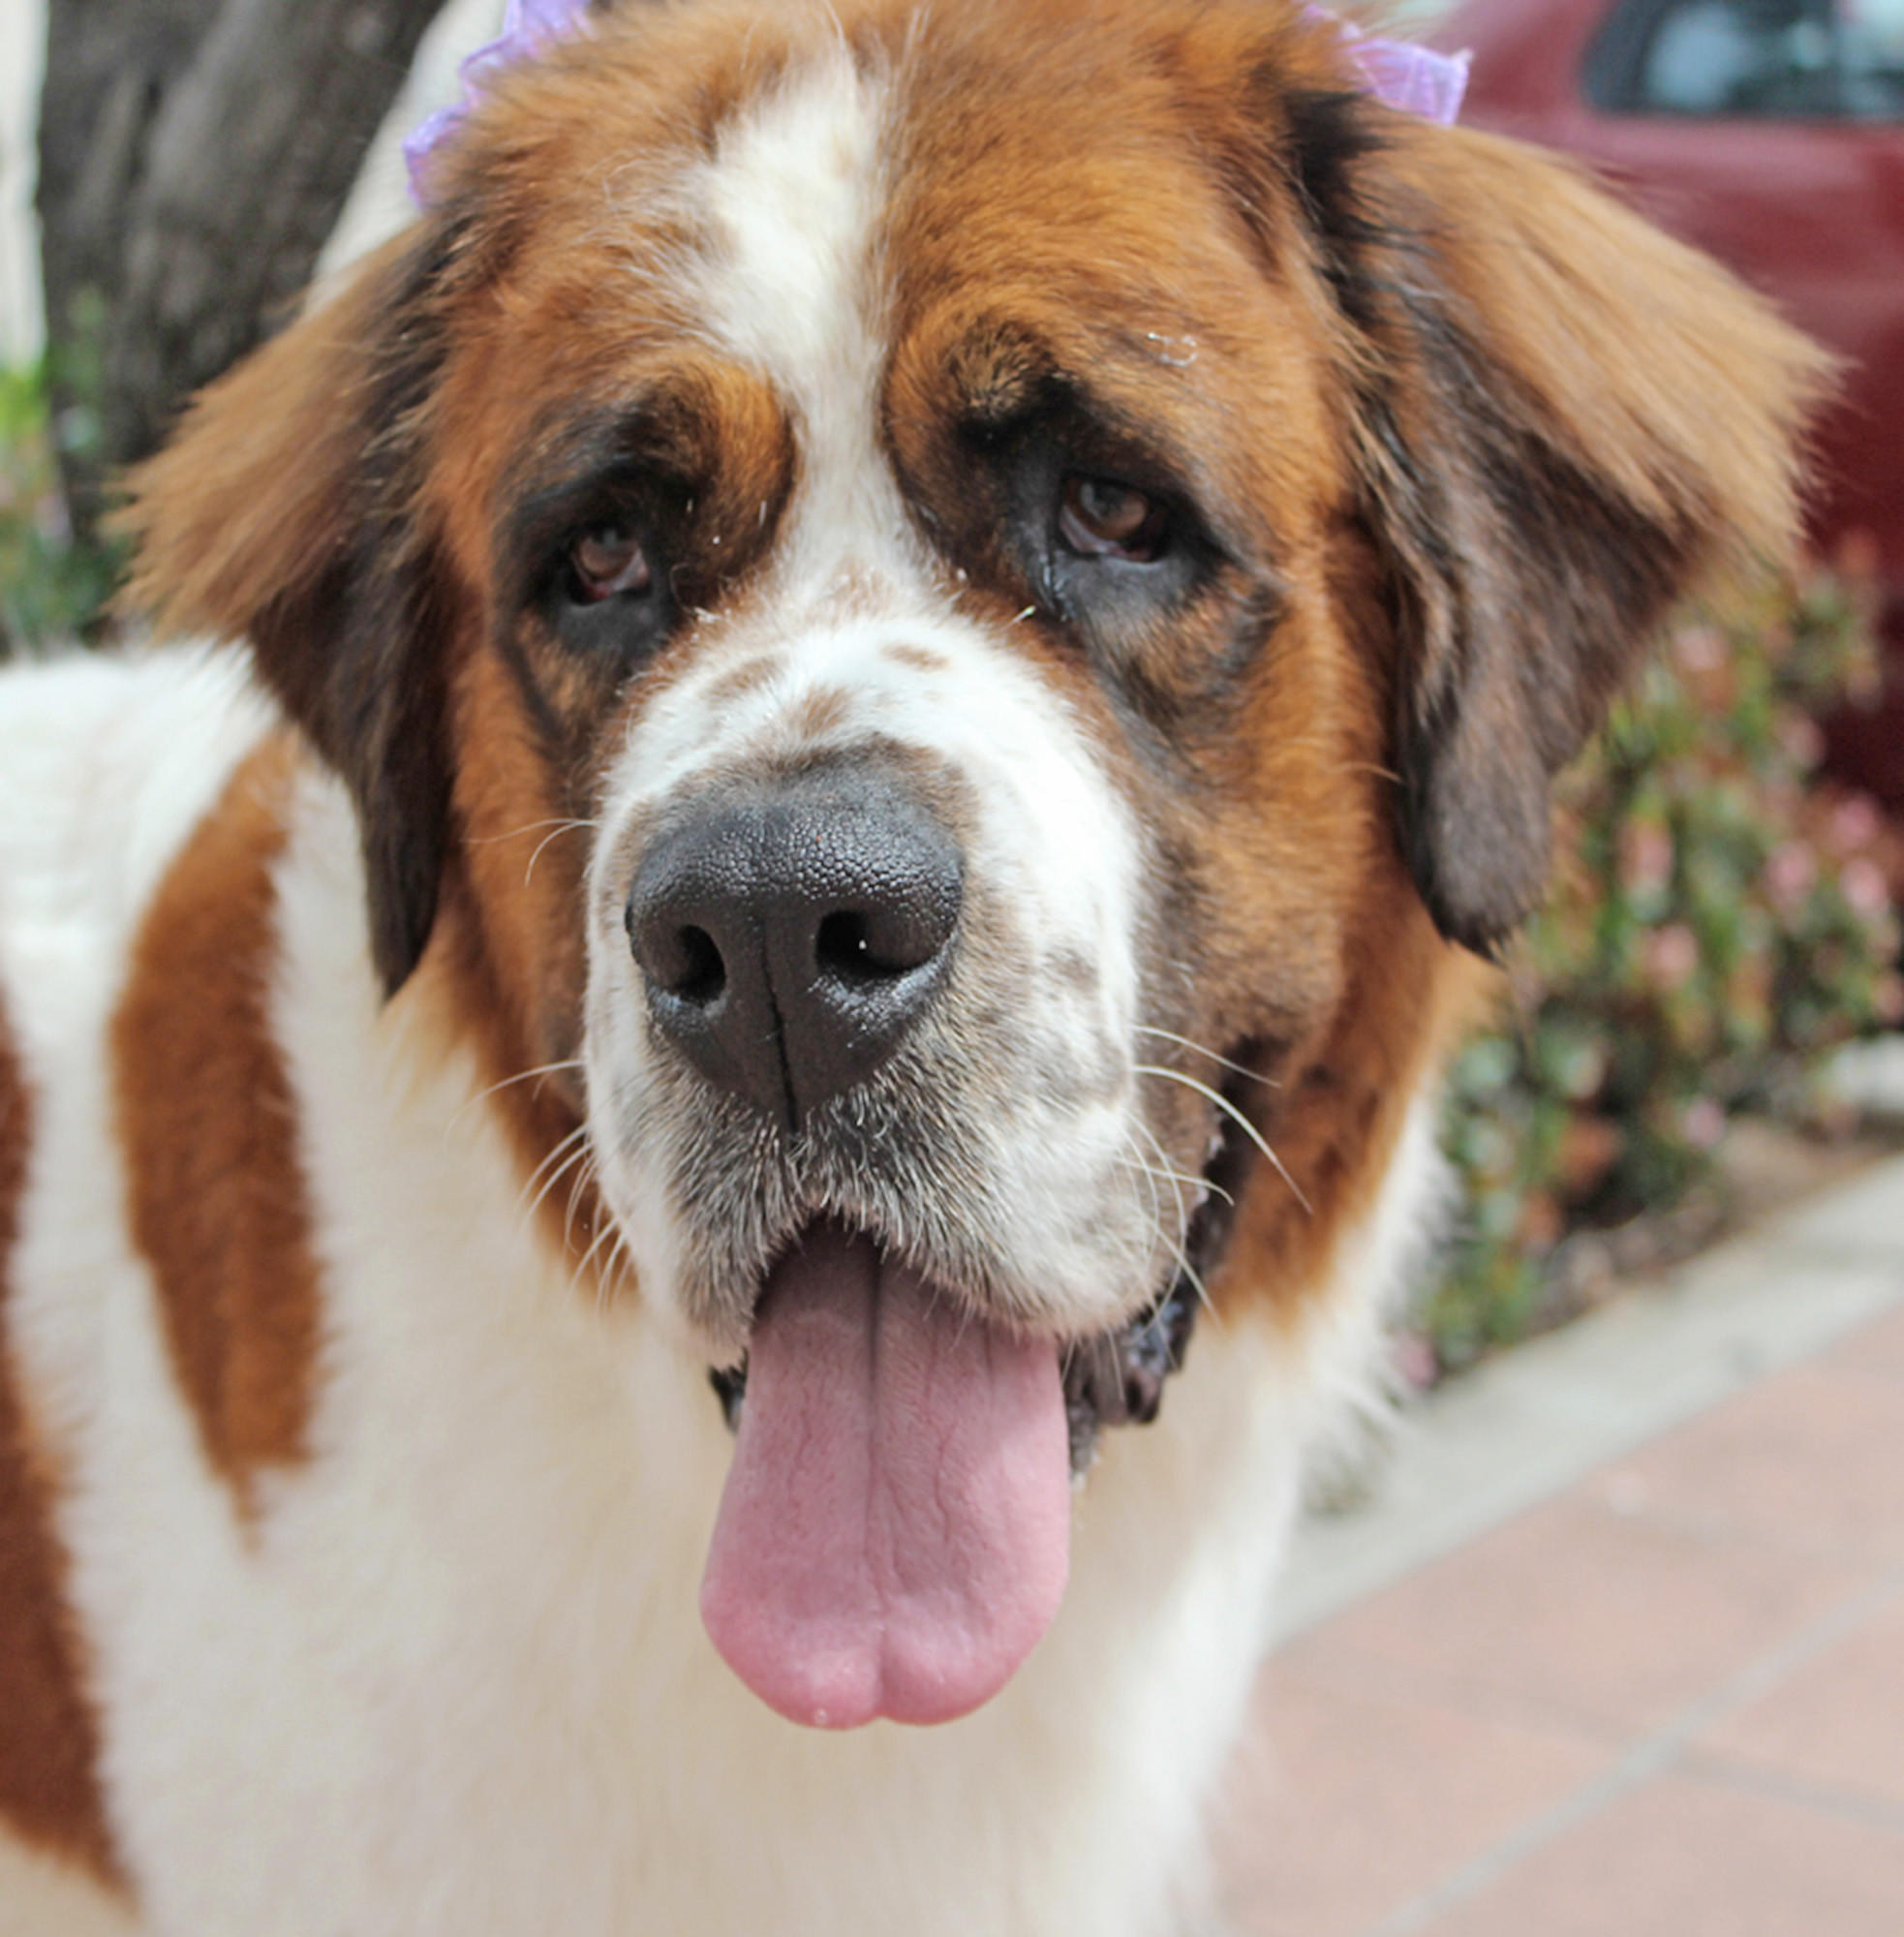 Dakota (A353359) is a five-year-old St. Bernard up for adoption.